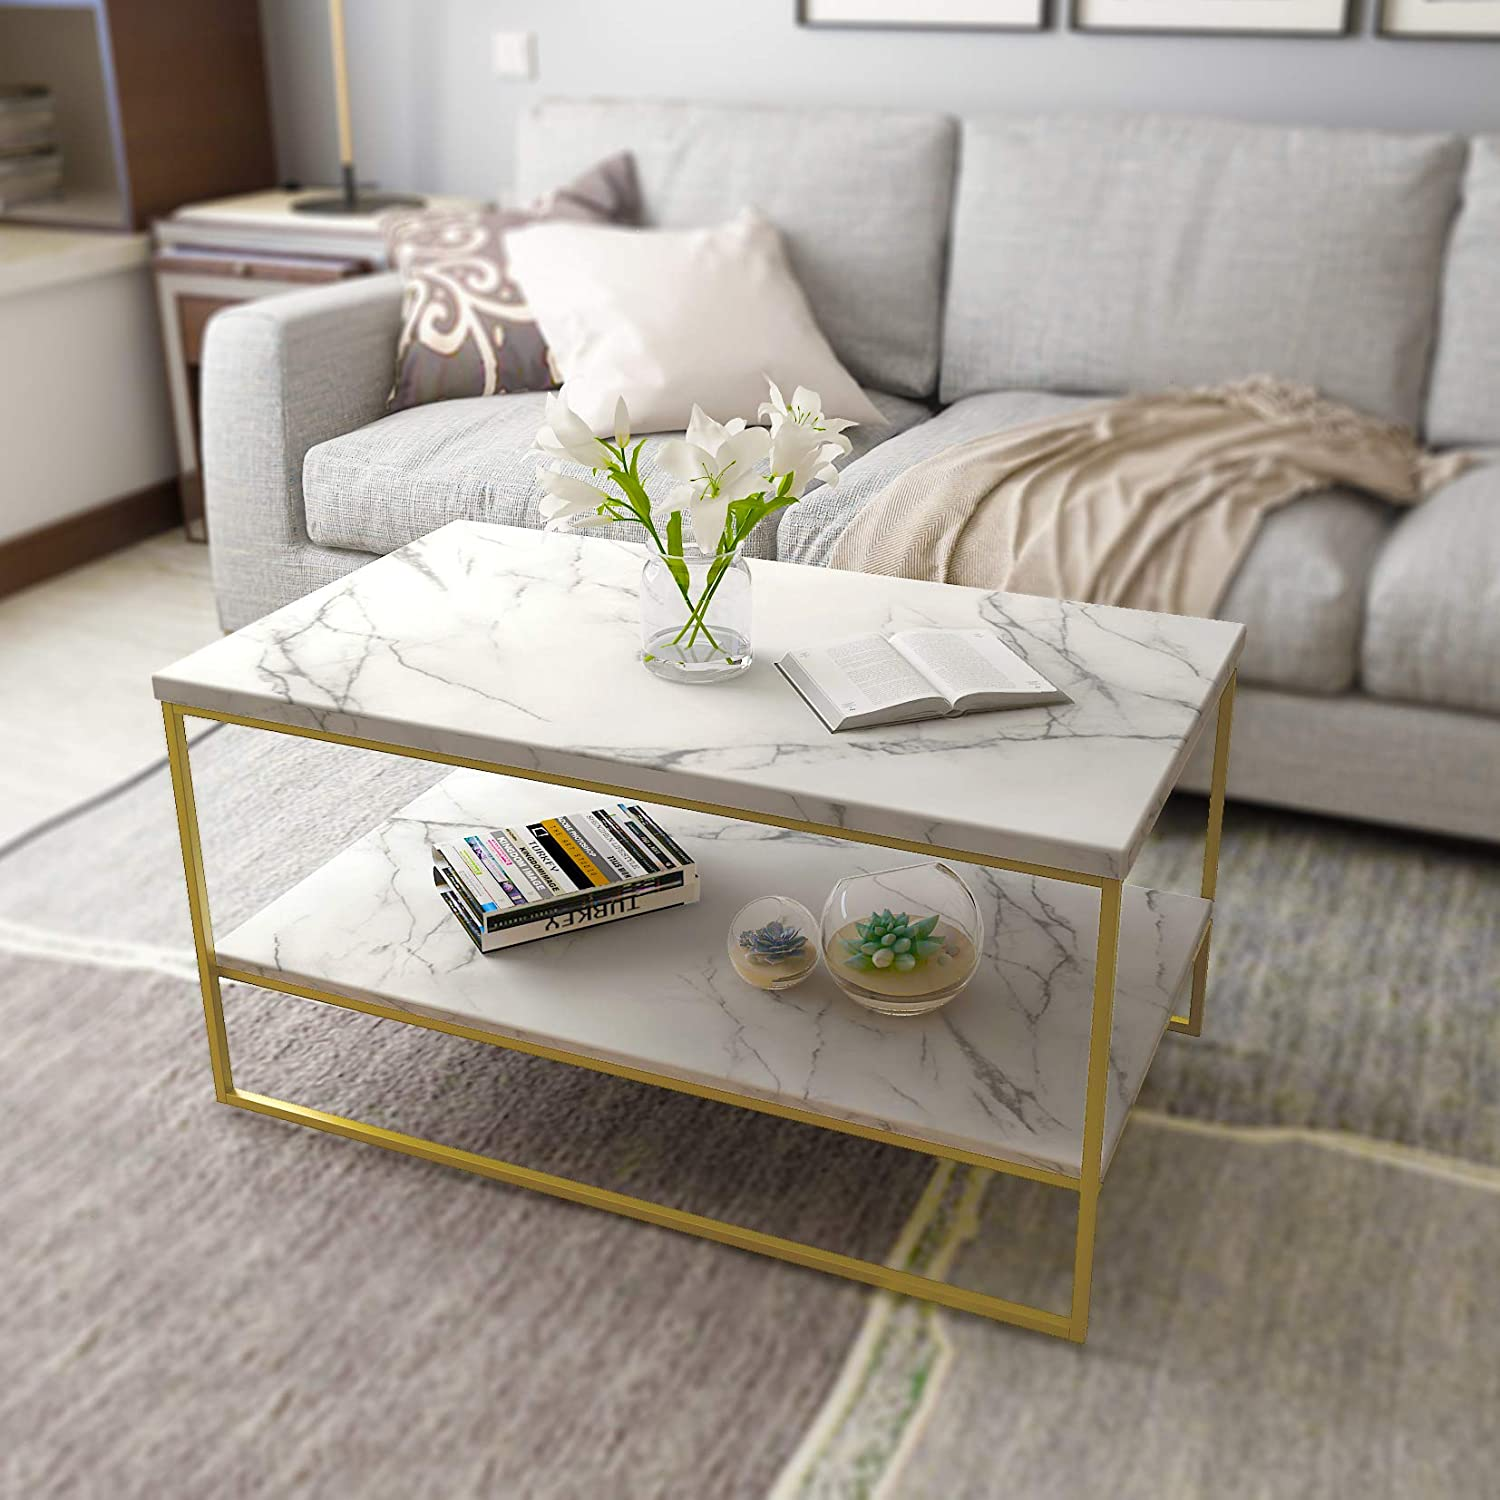 Roomfitters White Marble Print Coffee Table Gold Metal Legs Living Room Tables Amazon Co Uk Kitchen Home